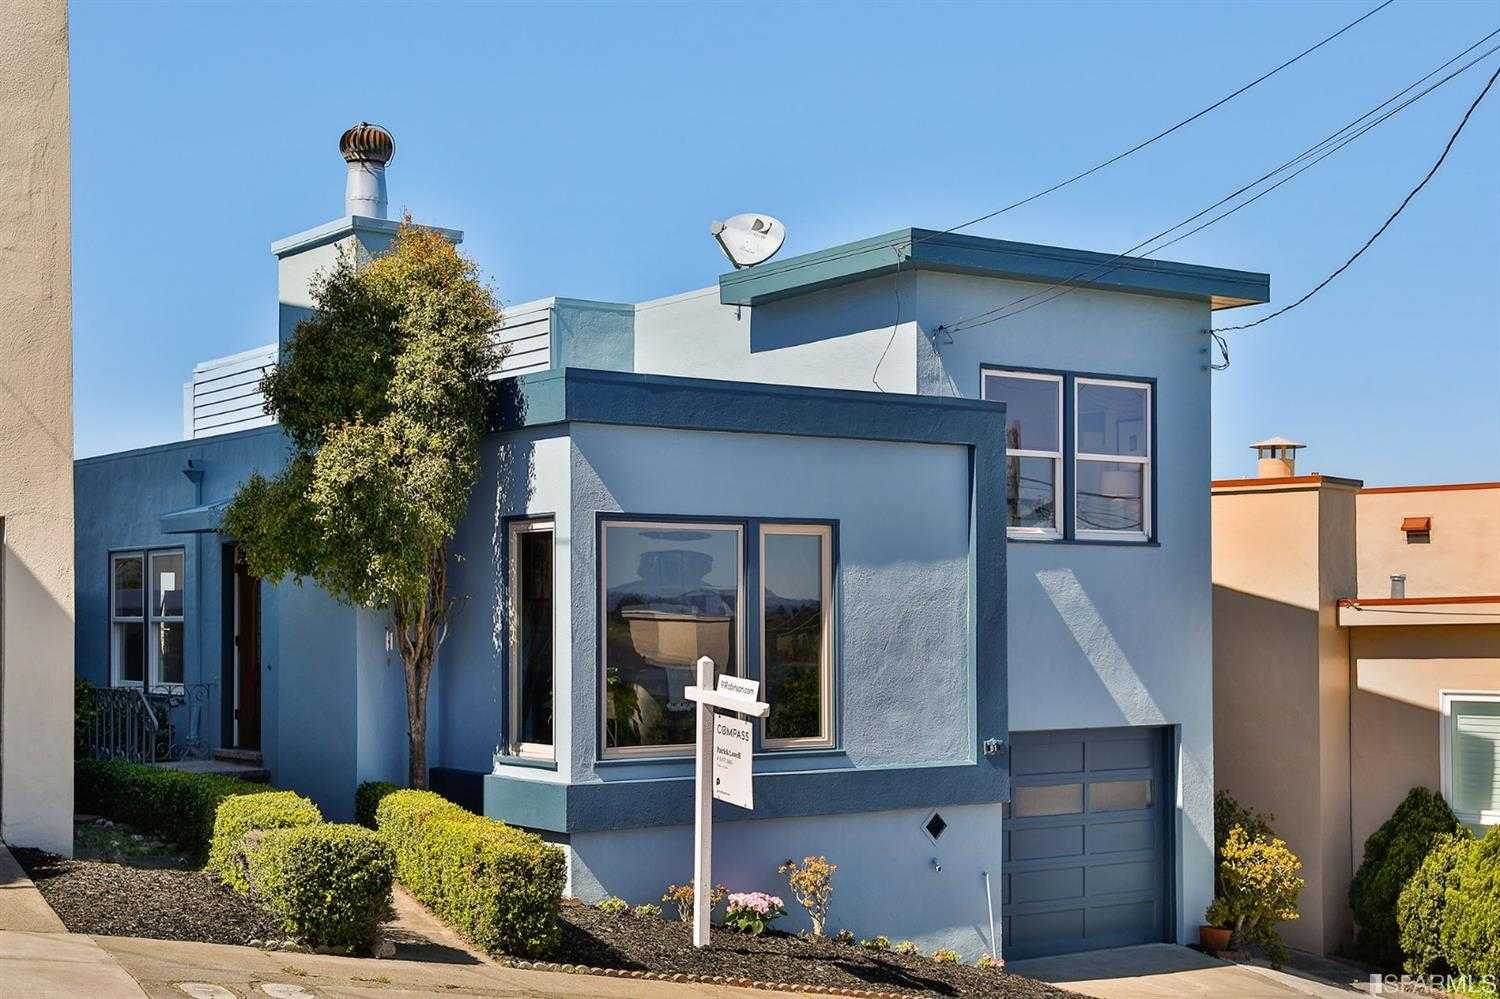 $895,000 - 3Br/1Ba -  for Sale in San Francisco